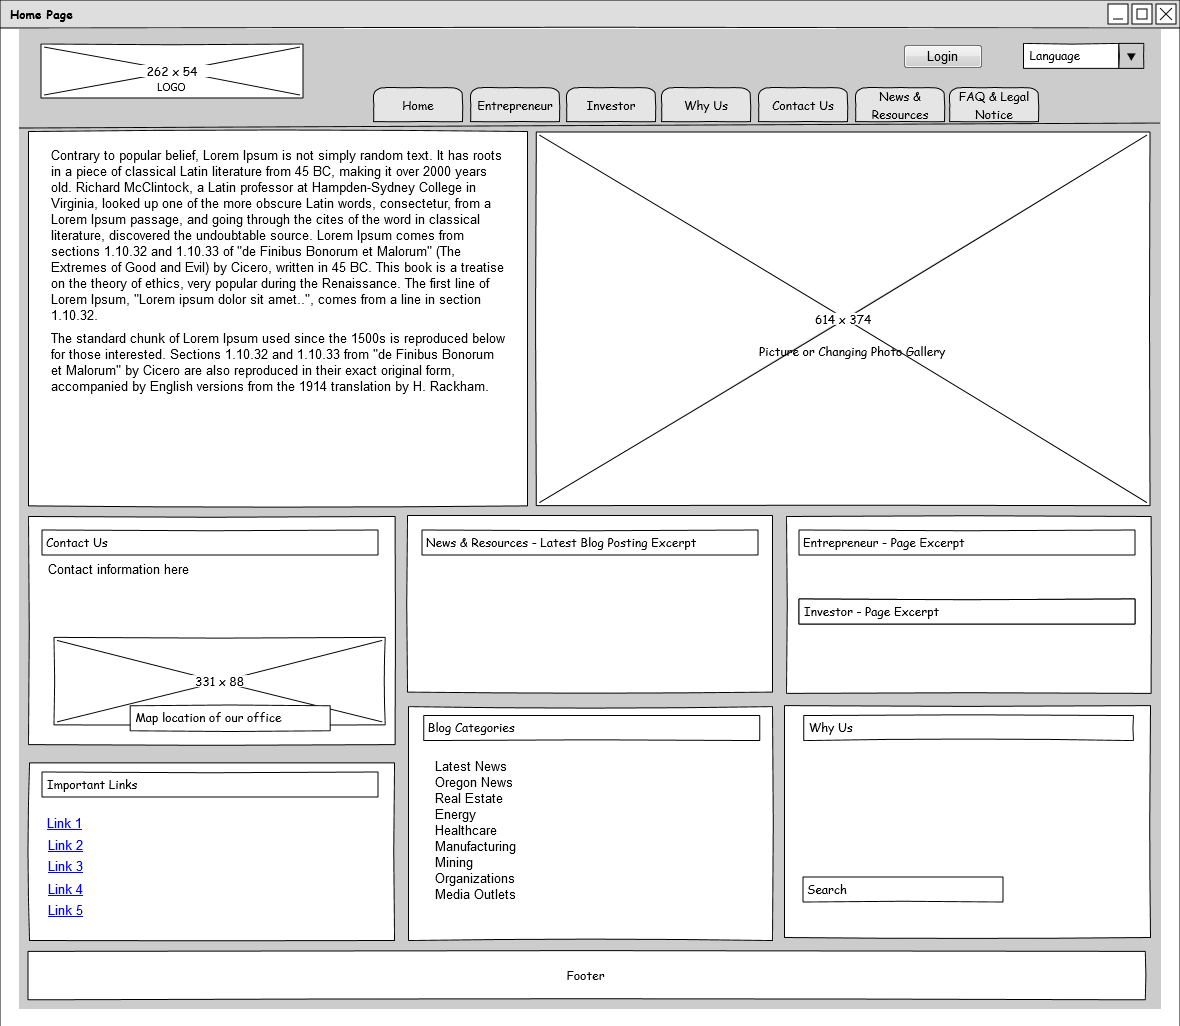 website wireframe diagram example project management life cycle phases this is an of a medium fidelity